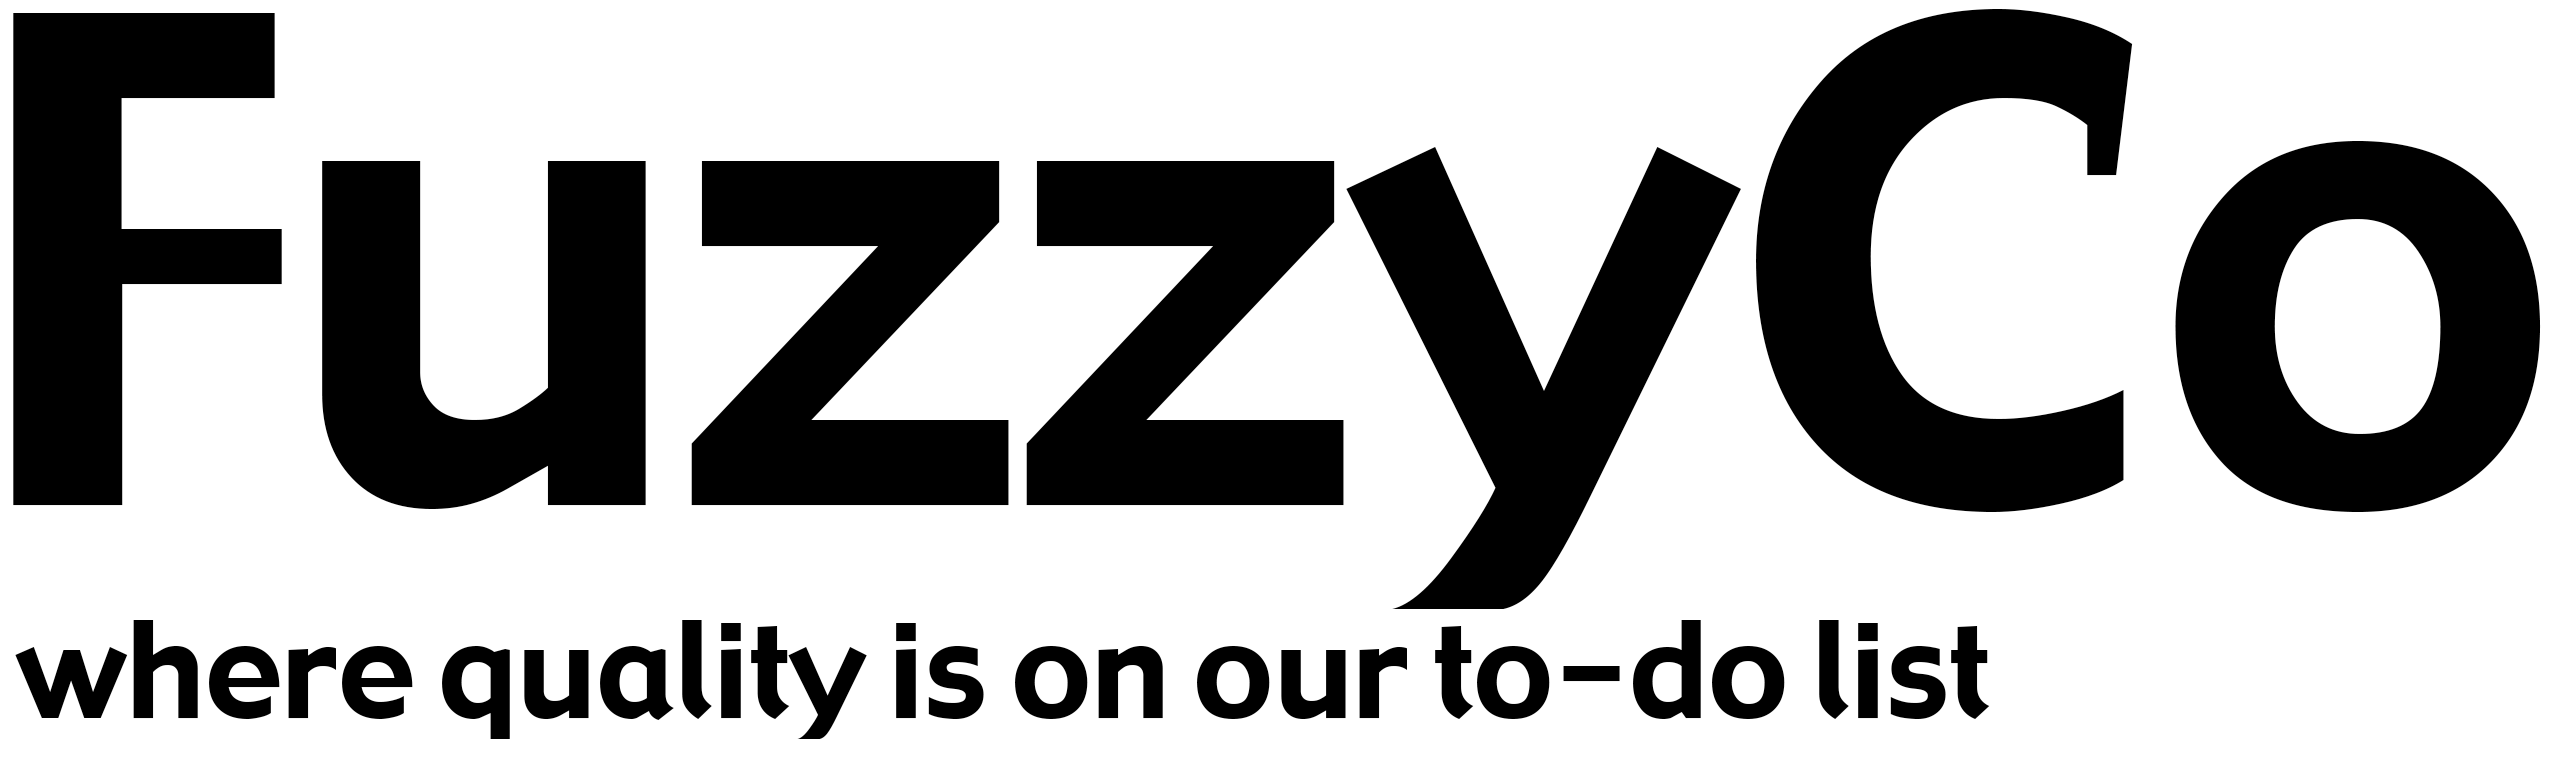 FuzzyCo Productions